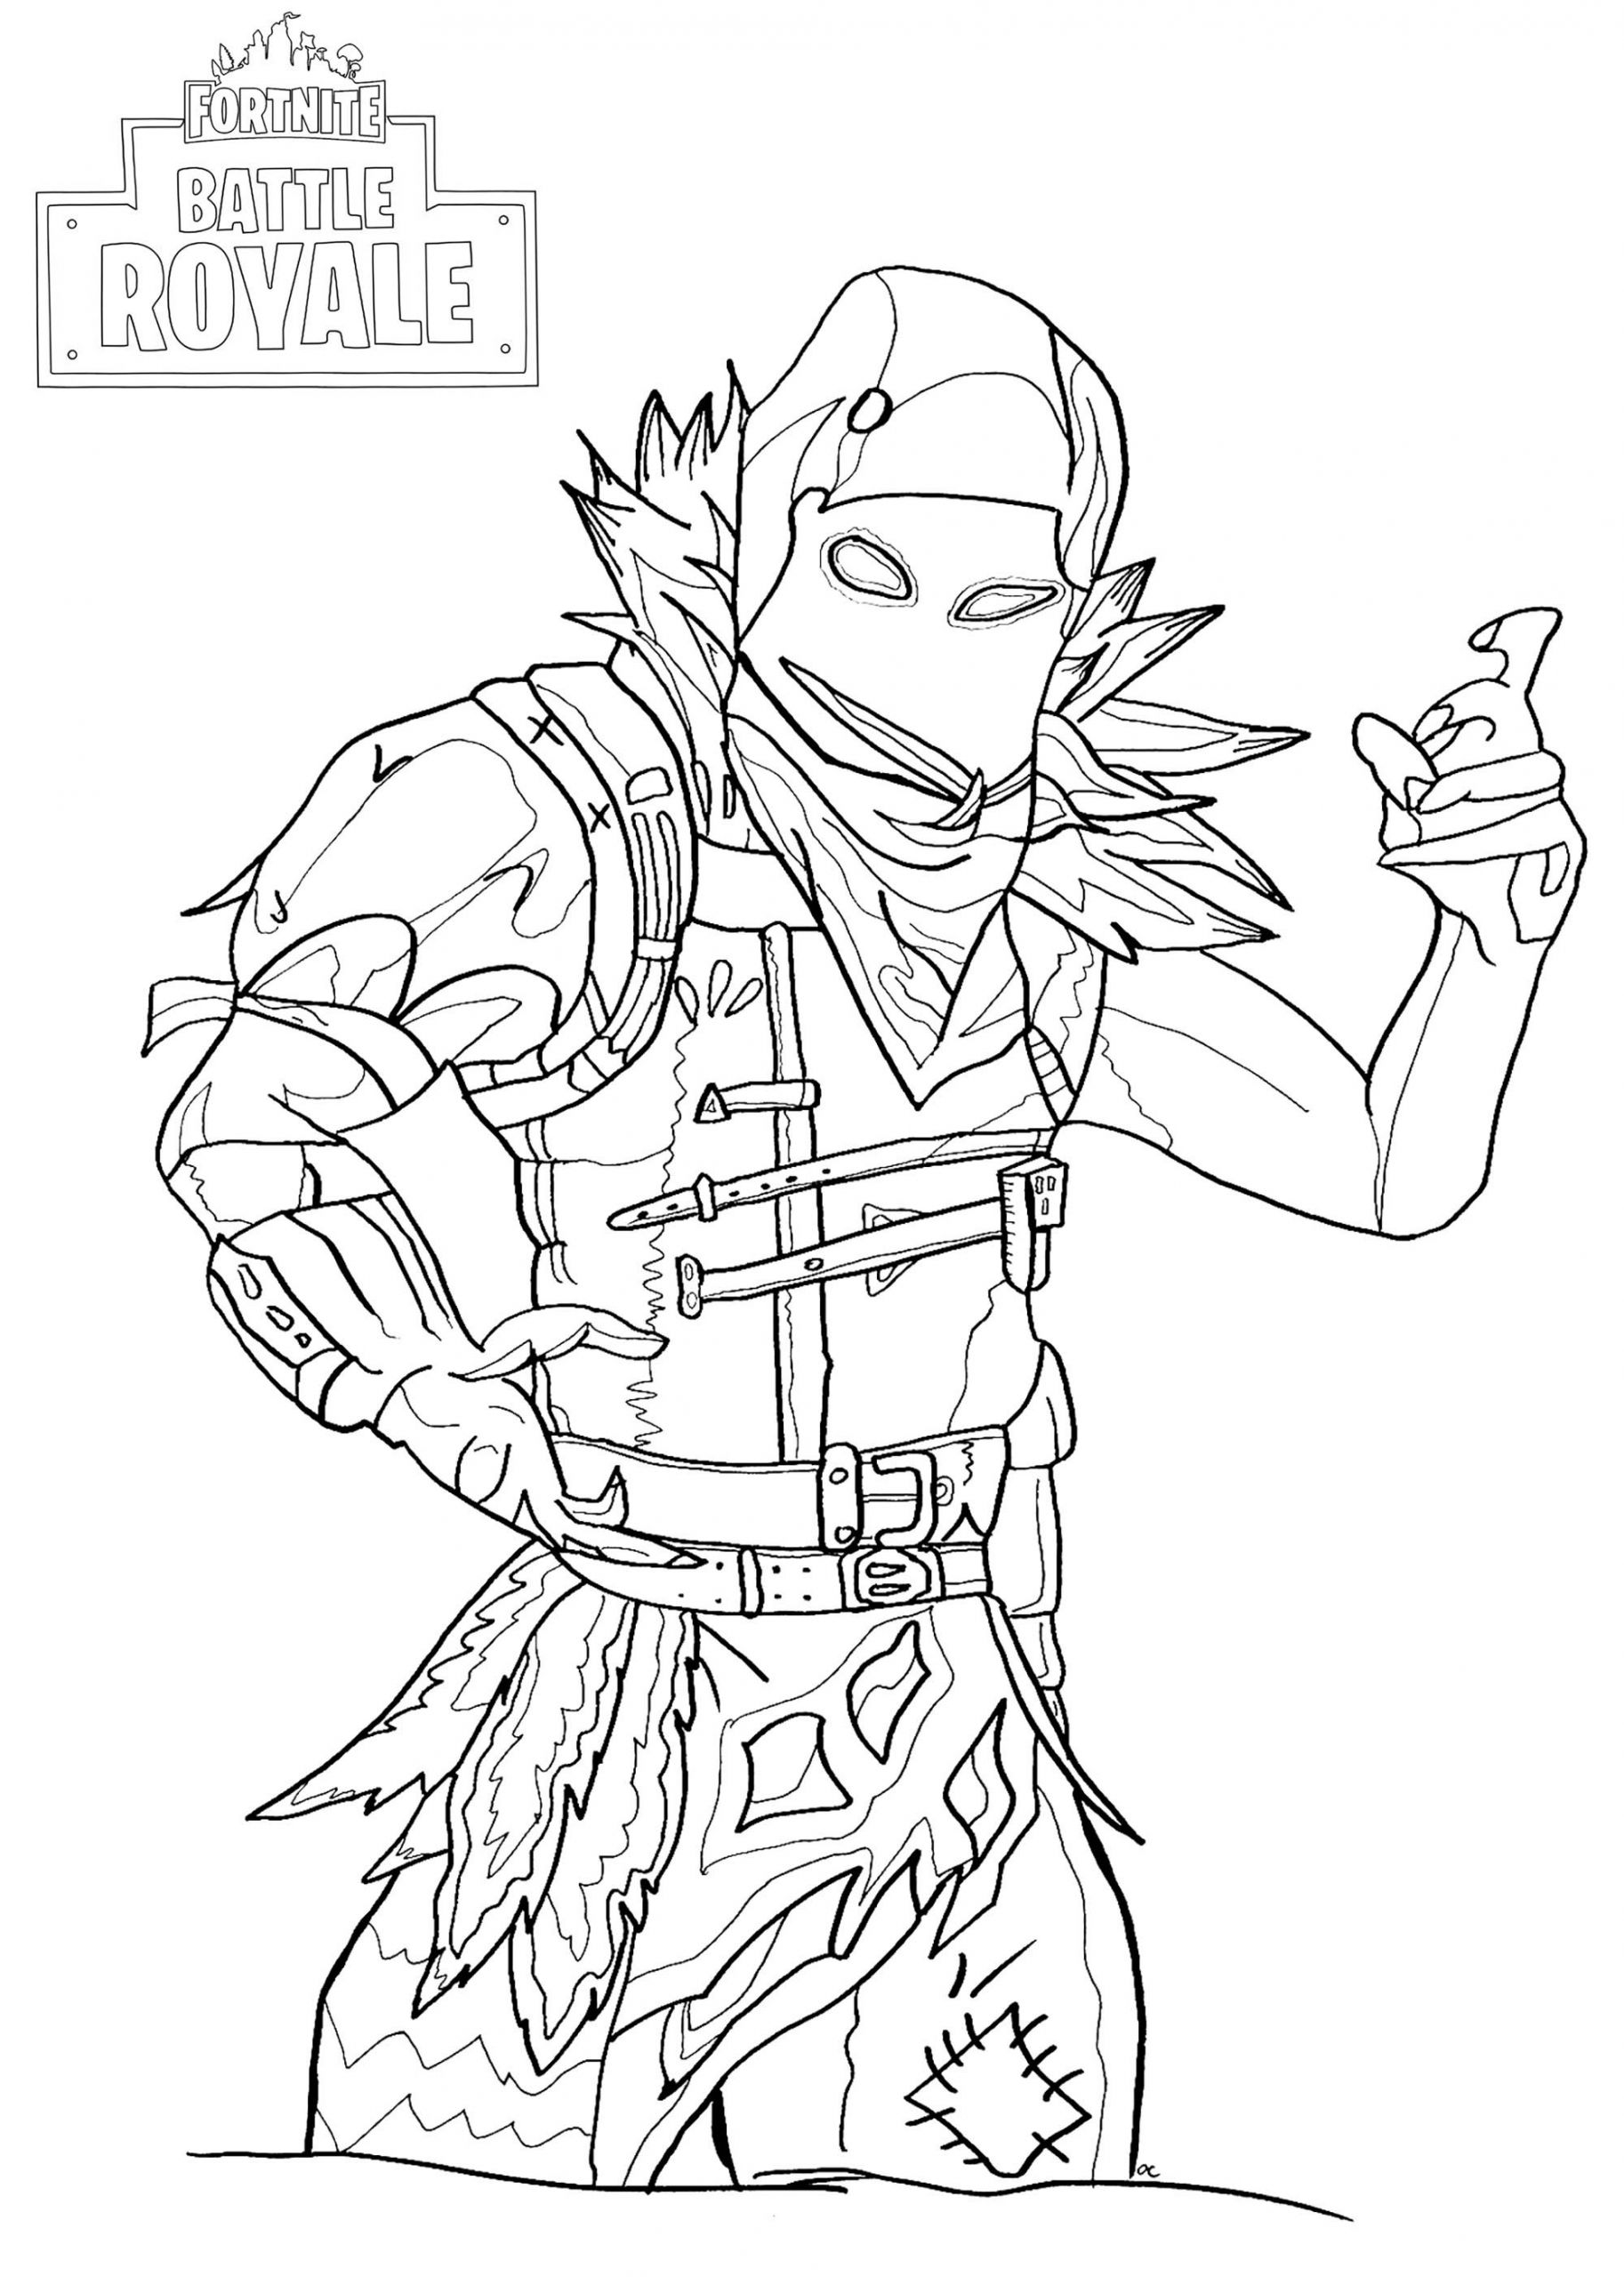 Coloriage De fortnite A Imprimer Gratuitement Beautiful fortnite Battle Royale Raven Coloriage fortnite Battle Of Coloriage De fortnite A Imprimer Gratuitement